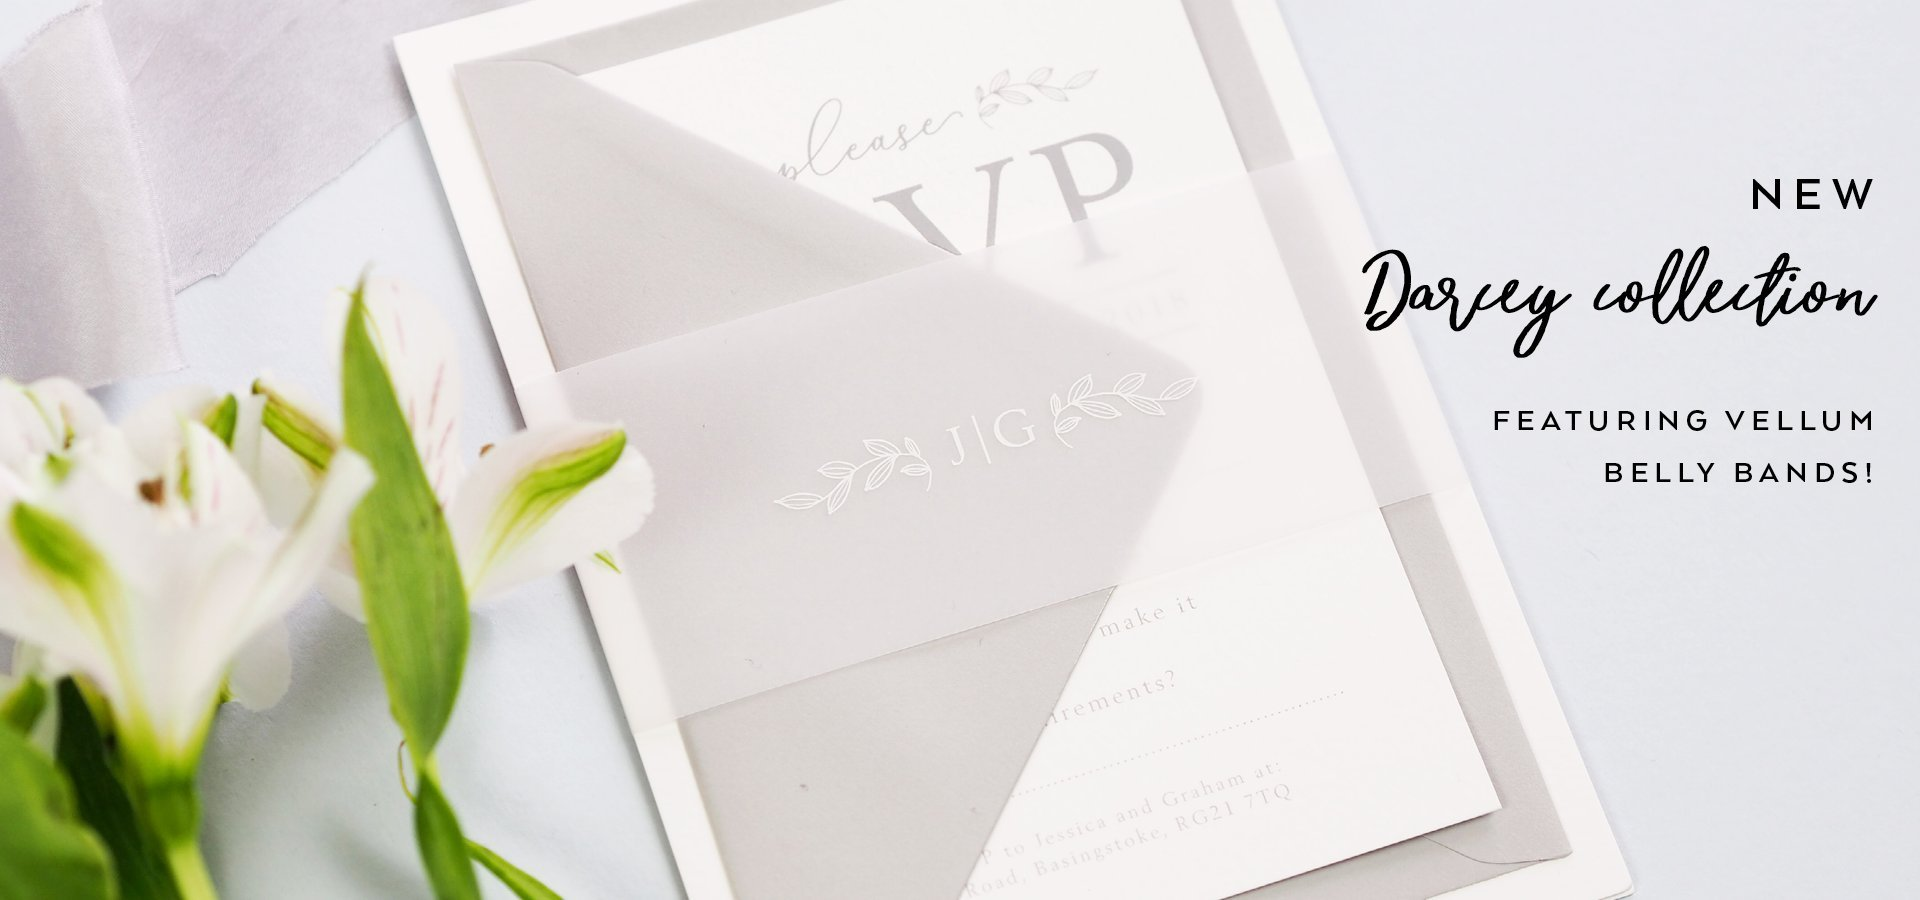 Darcey wedding invitations featuring vellum belly bands